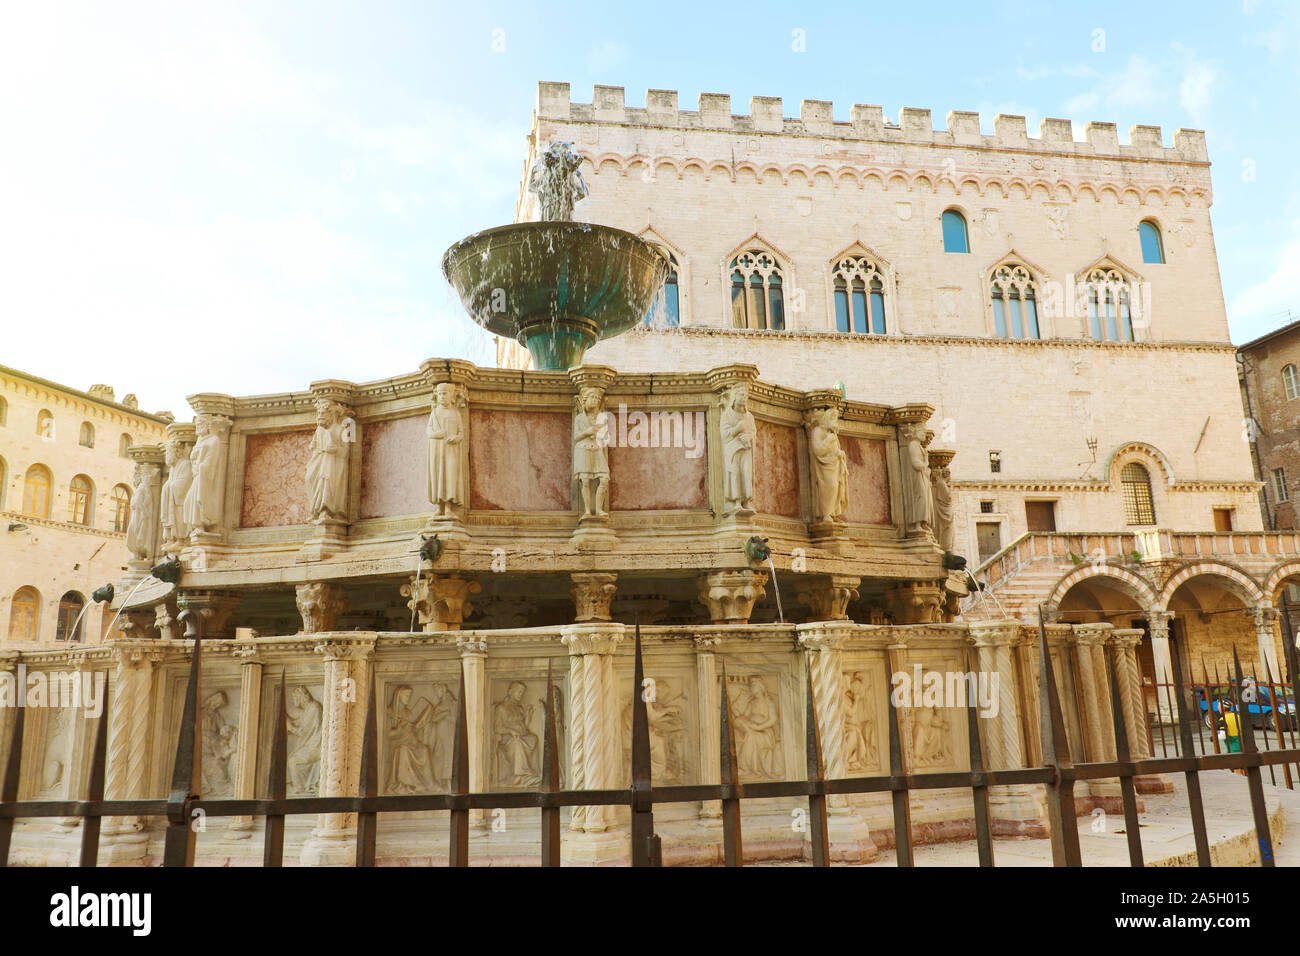 Close up of monumental fountain Fontana Maggiore in Piazza IV Novembre main square of Perugia, Umbria, Italy. Stock Photo